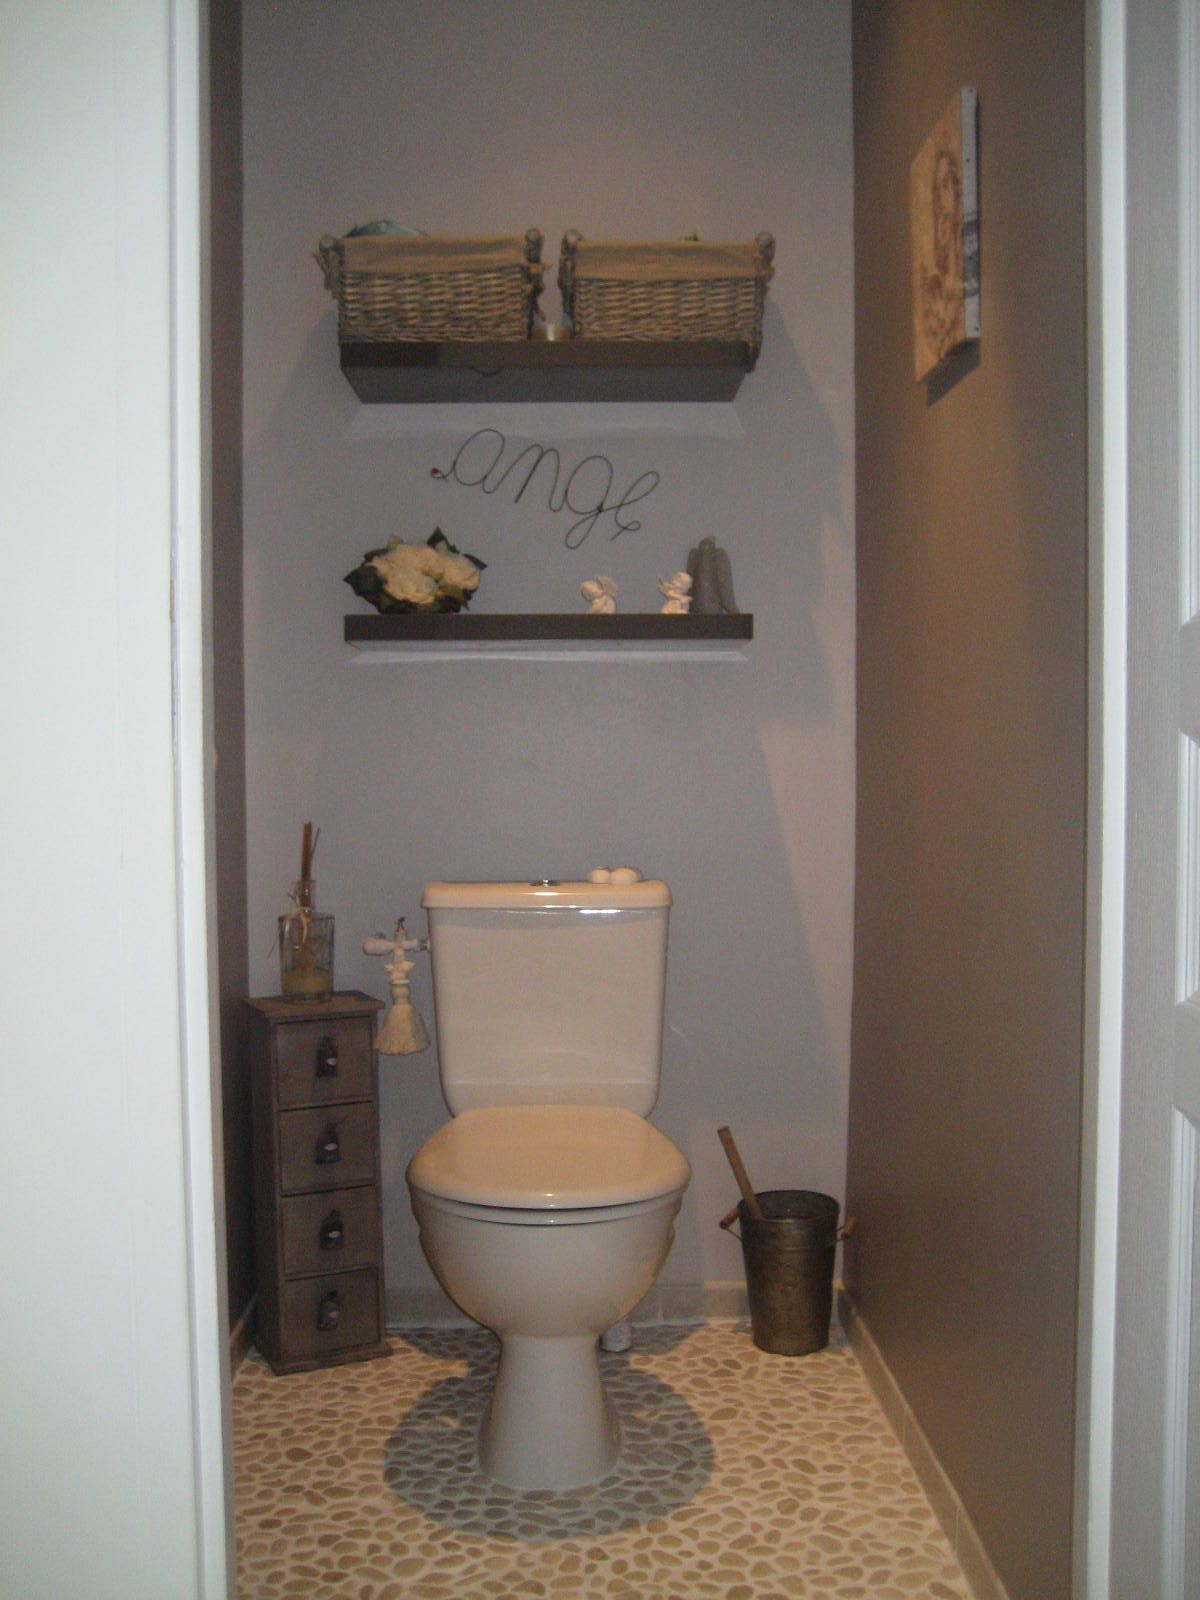 Toilette deco google search nouvelle maison pinterest d co toilettes - Idee decoration toilette ...